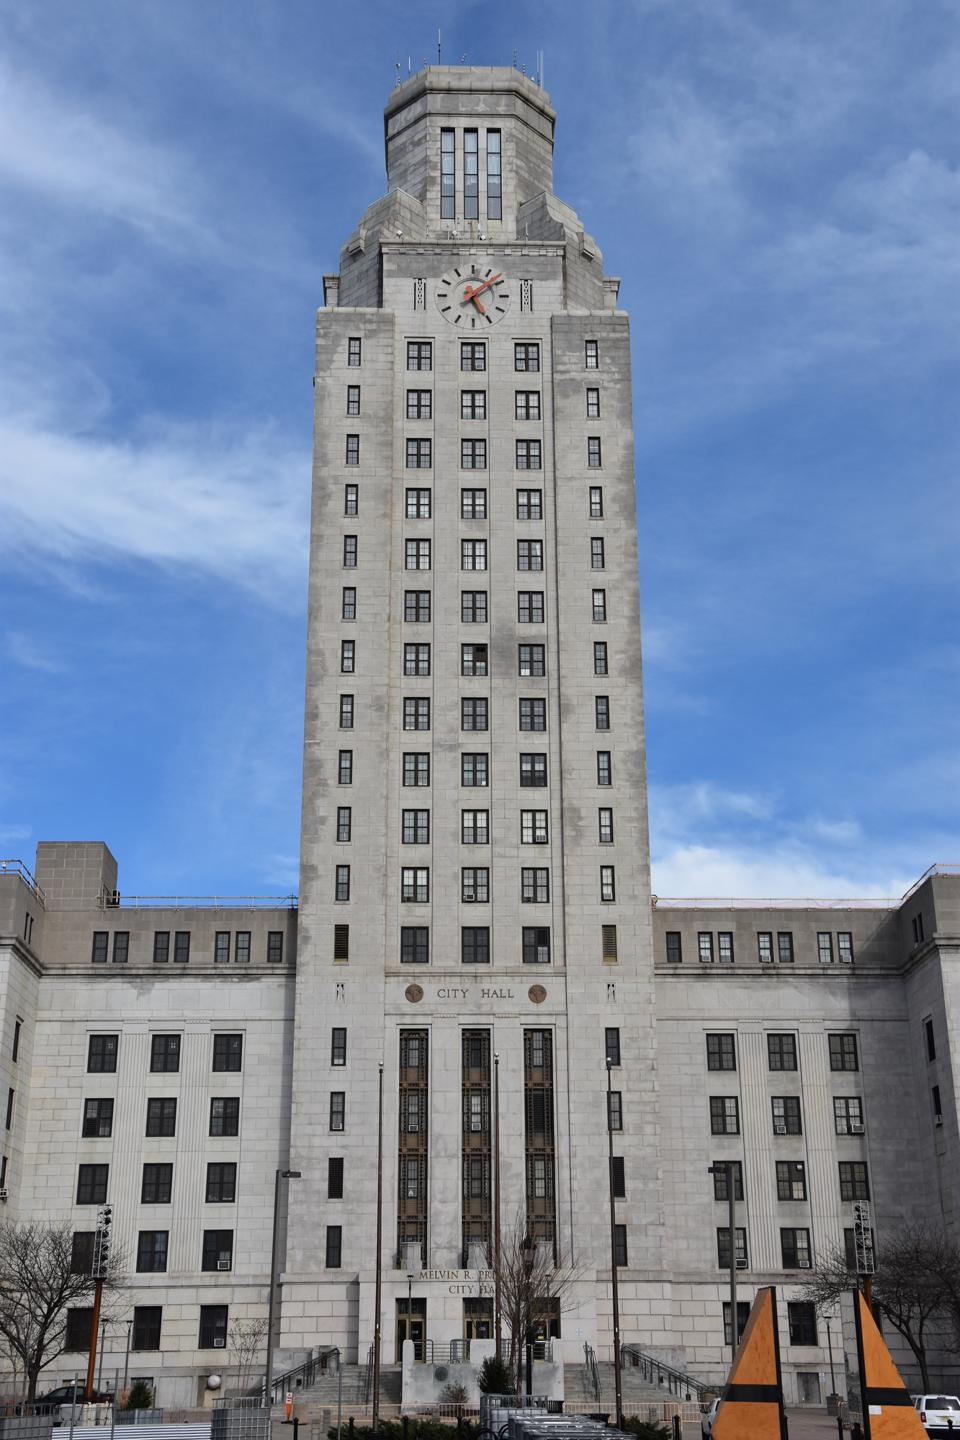 City Hall building with large footprint, and a clock tower rising in the center